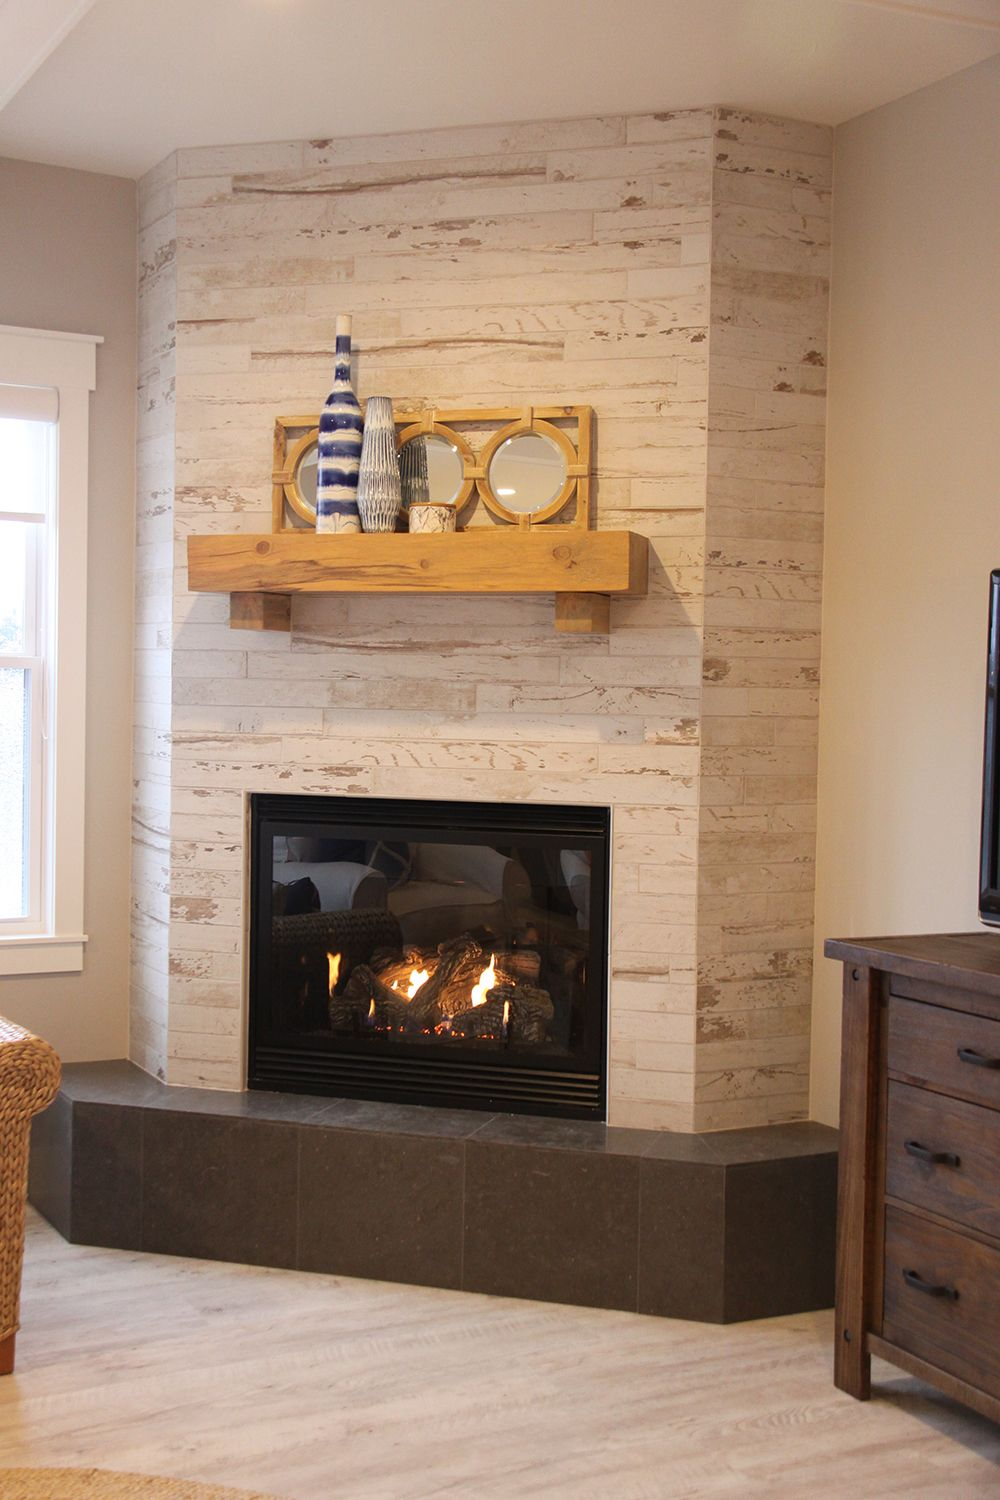 Corner Gas Fireplace Design Ideas corner gas fireplace photos interior marvelous neutral stone inside gas fireplace design ideas Wood Look Ceramic Tile Corner Fireplace